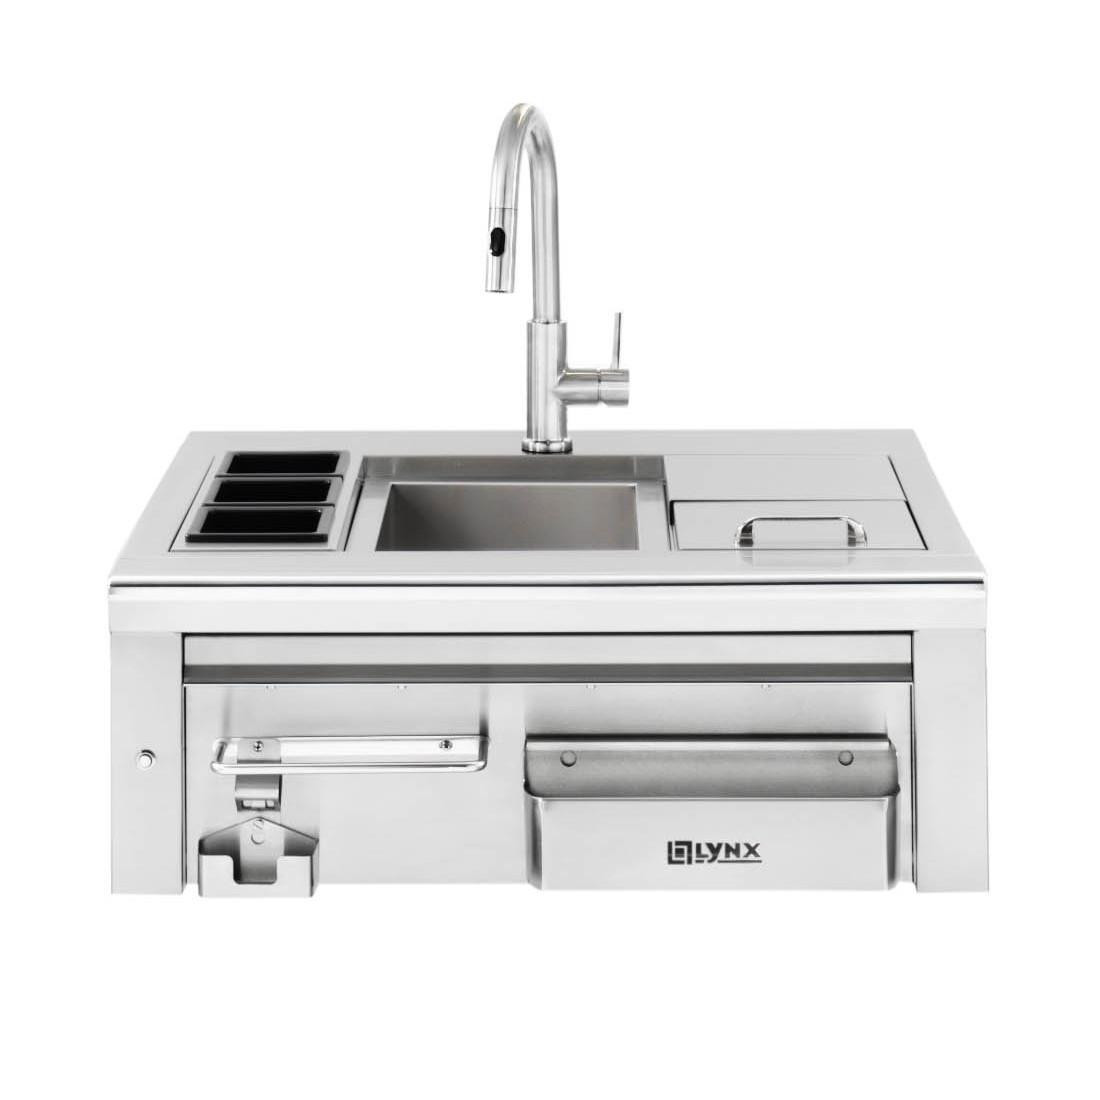 Lynx Lcs30 Professional Built In Cocktail Pro Station With